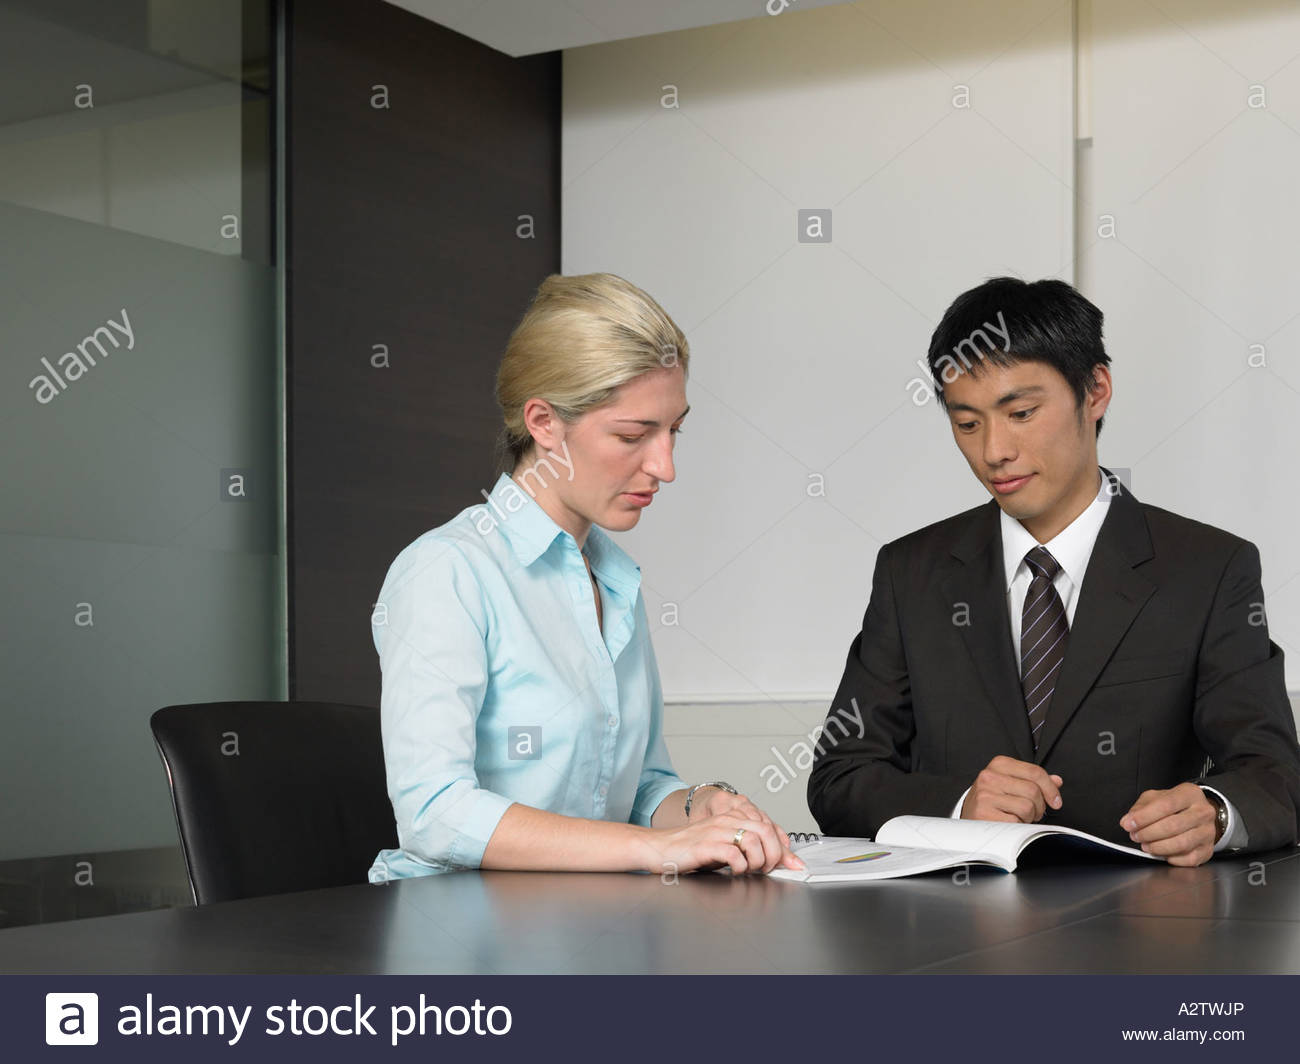 Two colleagues reading textbook - Stock Image